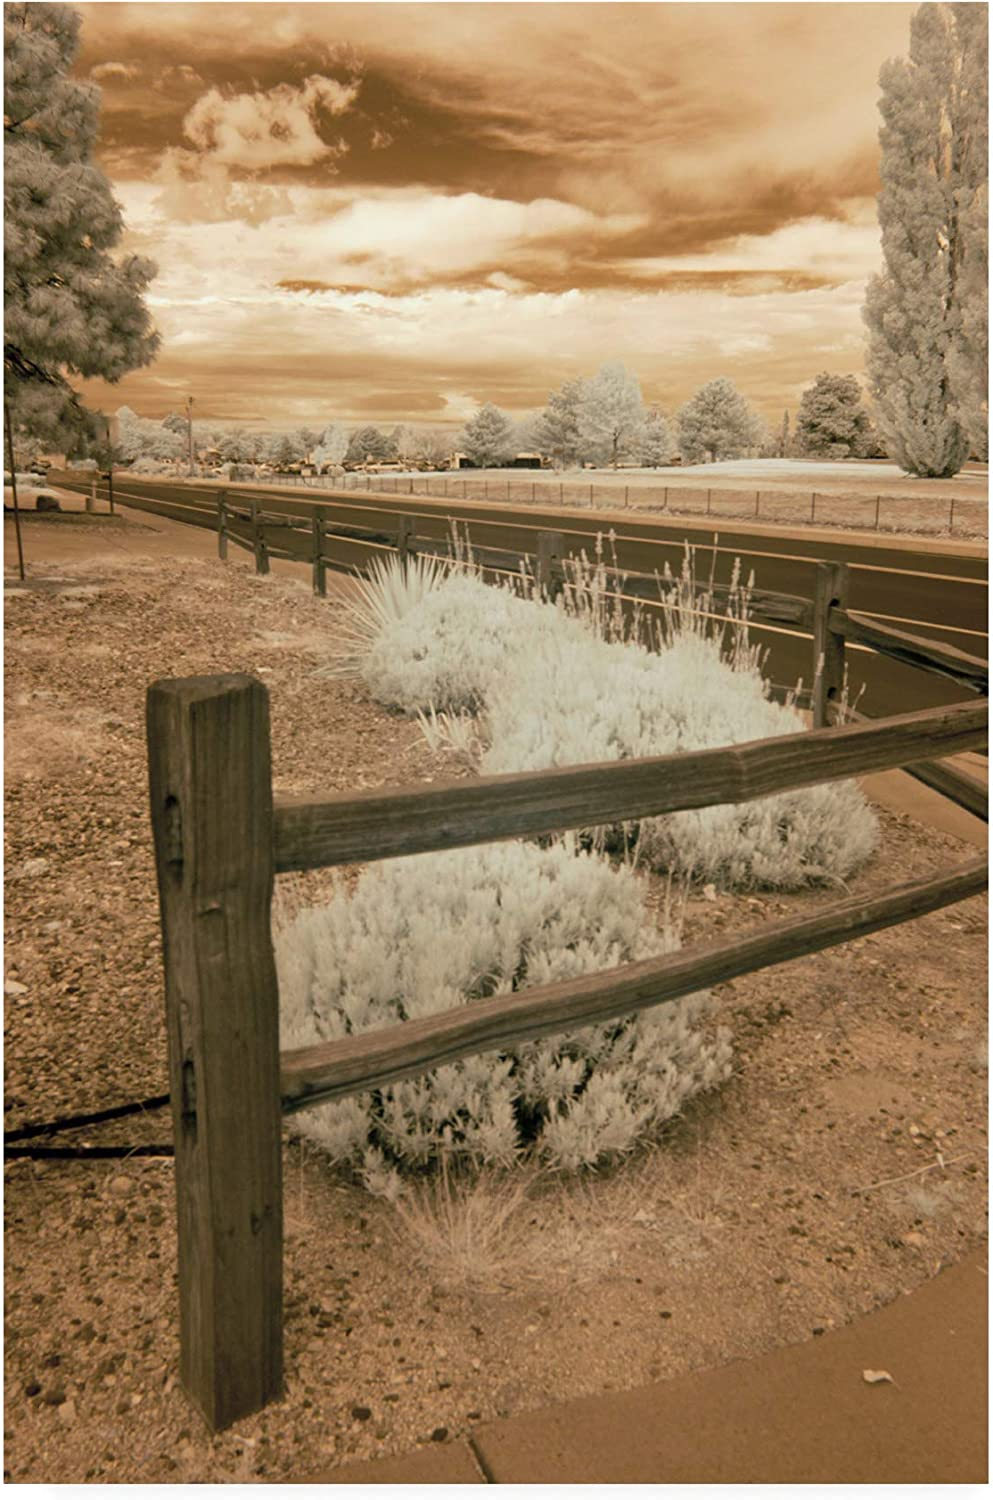 Trademark Fine Art Fence and Road Albuquerque New Mexico by Monte Nagler, 12x19